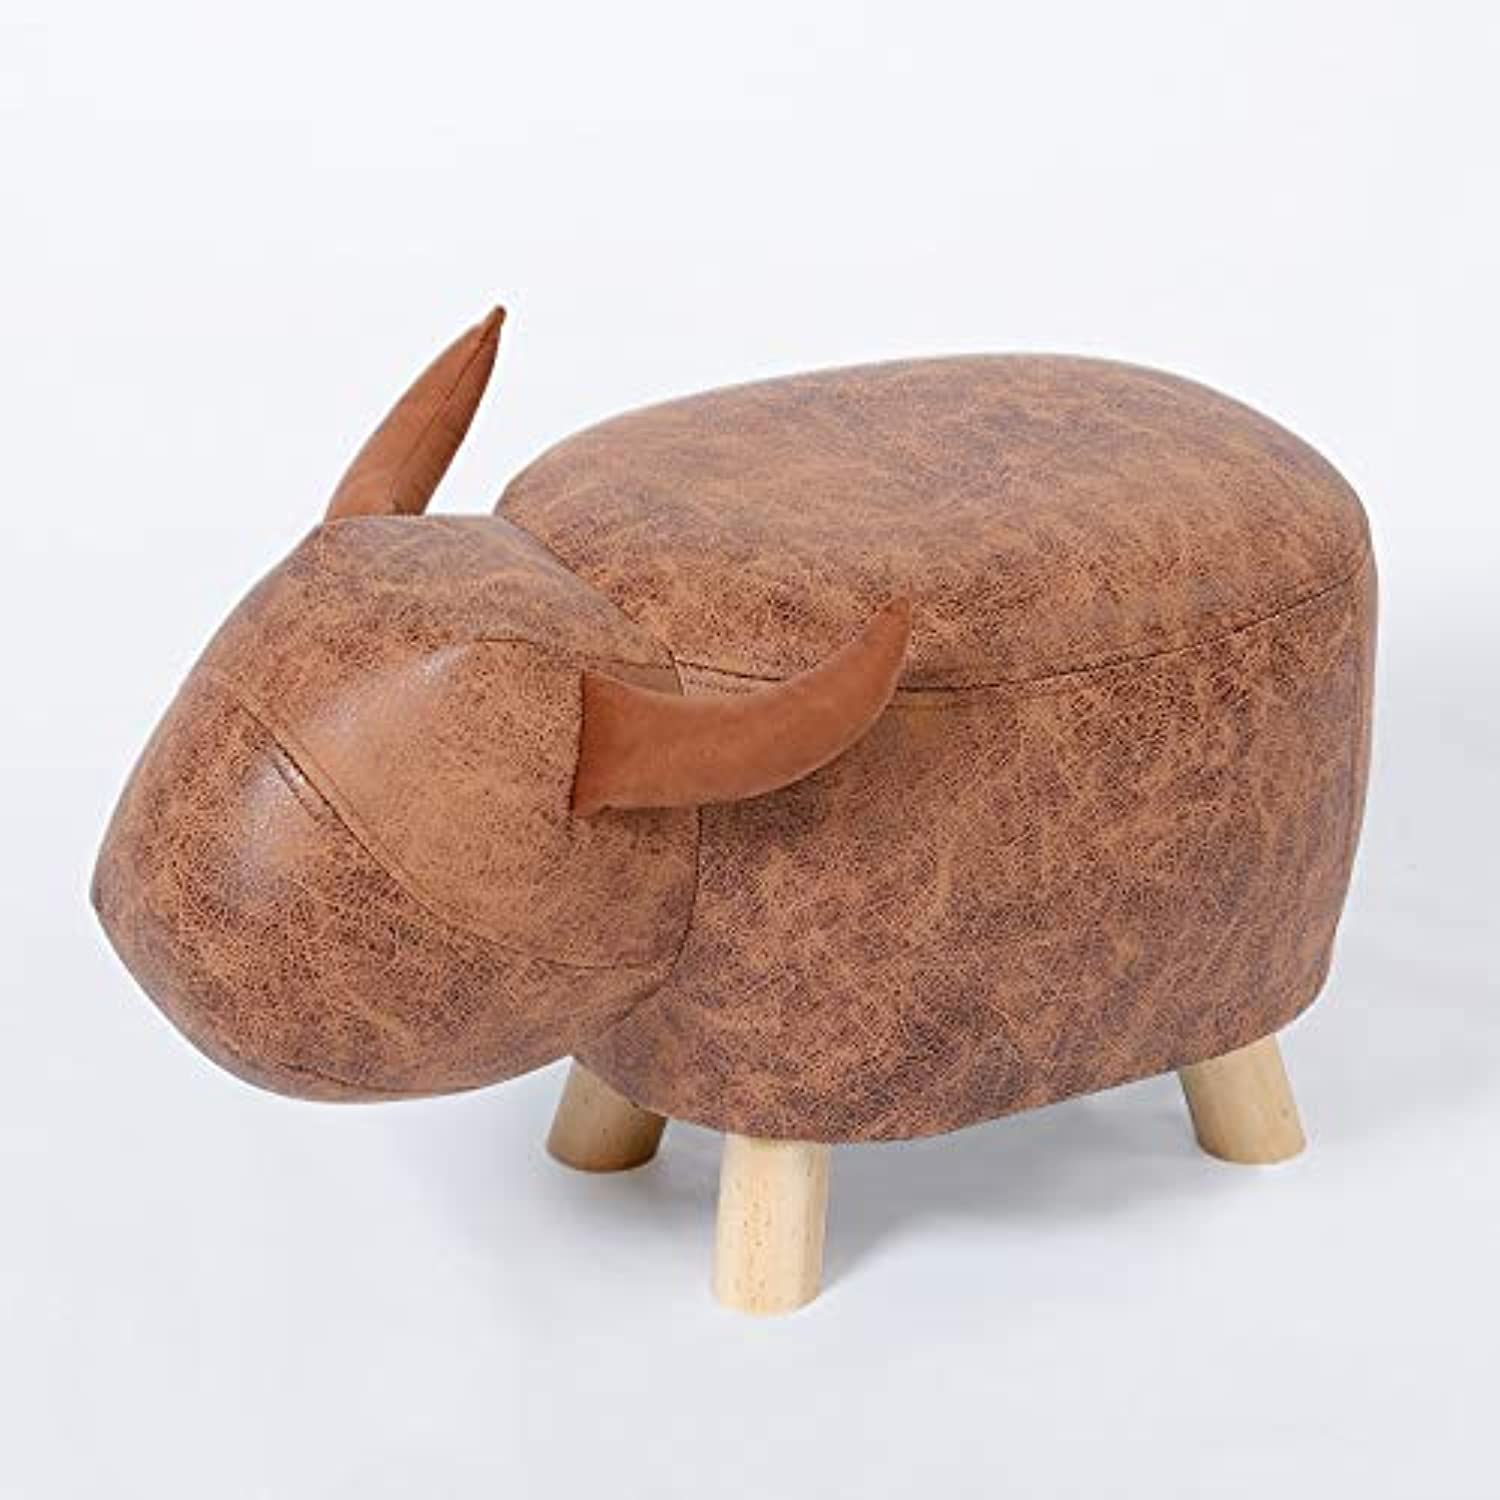 DQMSB Small Stool Home Cartoon Stool Change shoes Bench Small Bench Sofa Stool Solid Wood Stool Creative Fabric Stool (color   Brown)